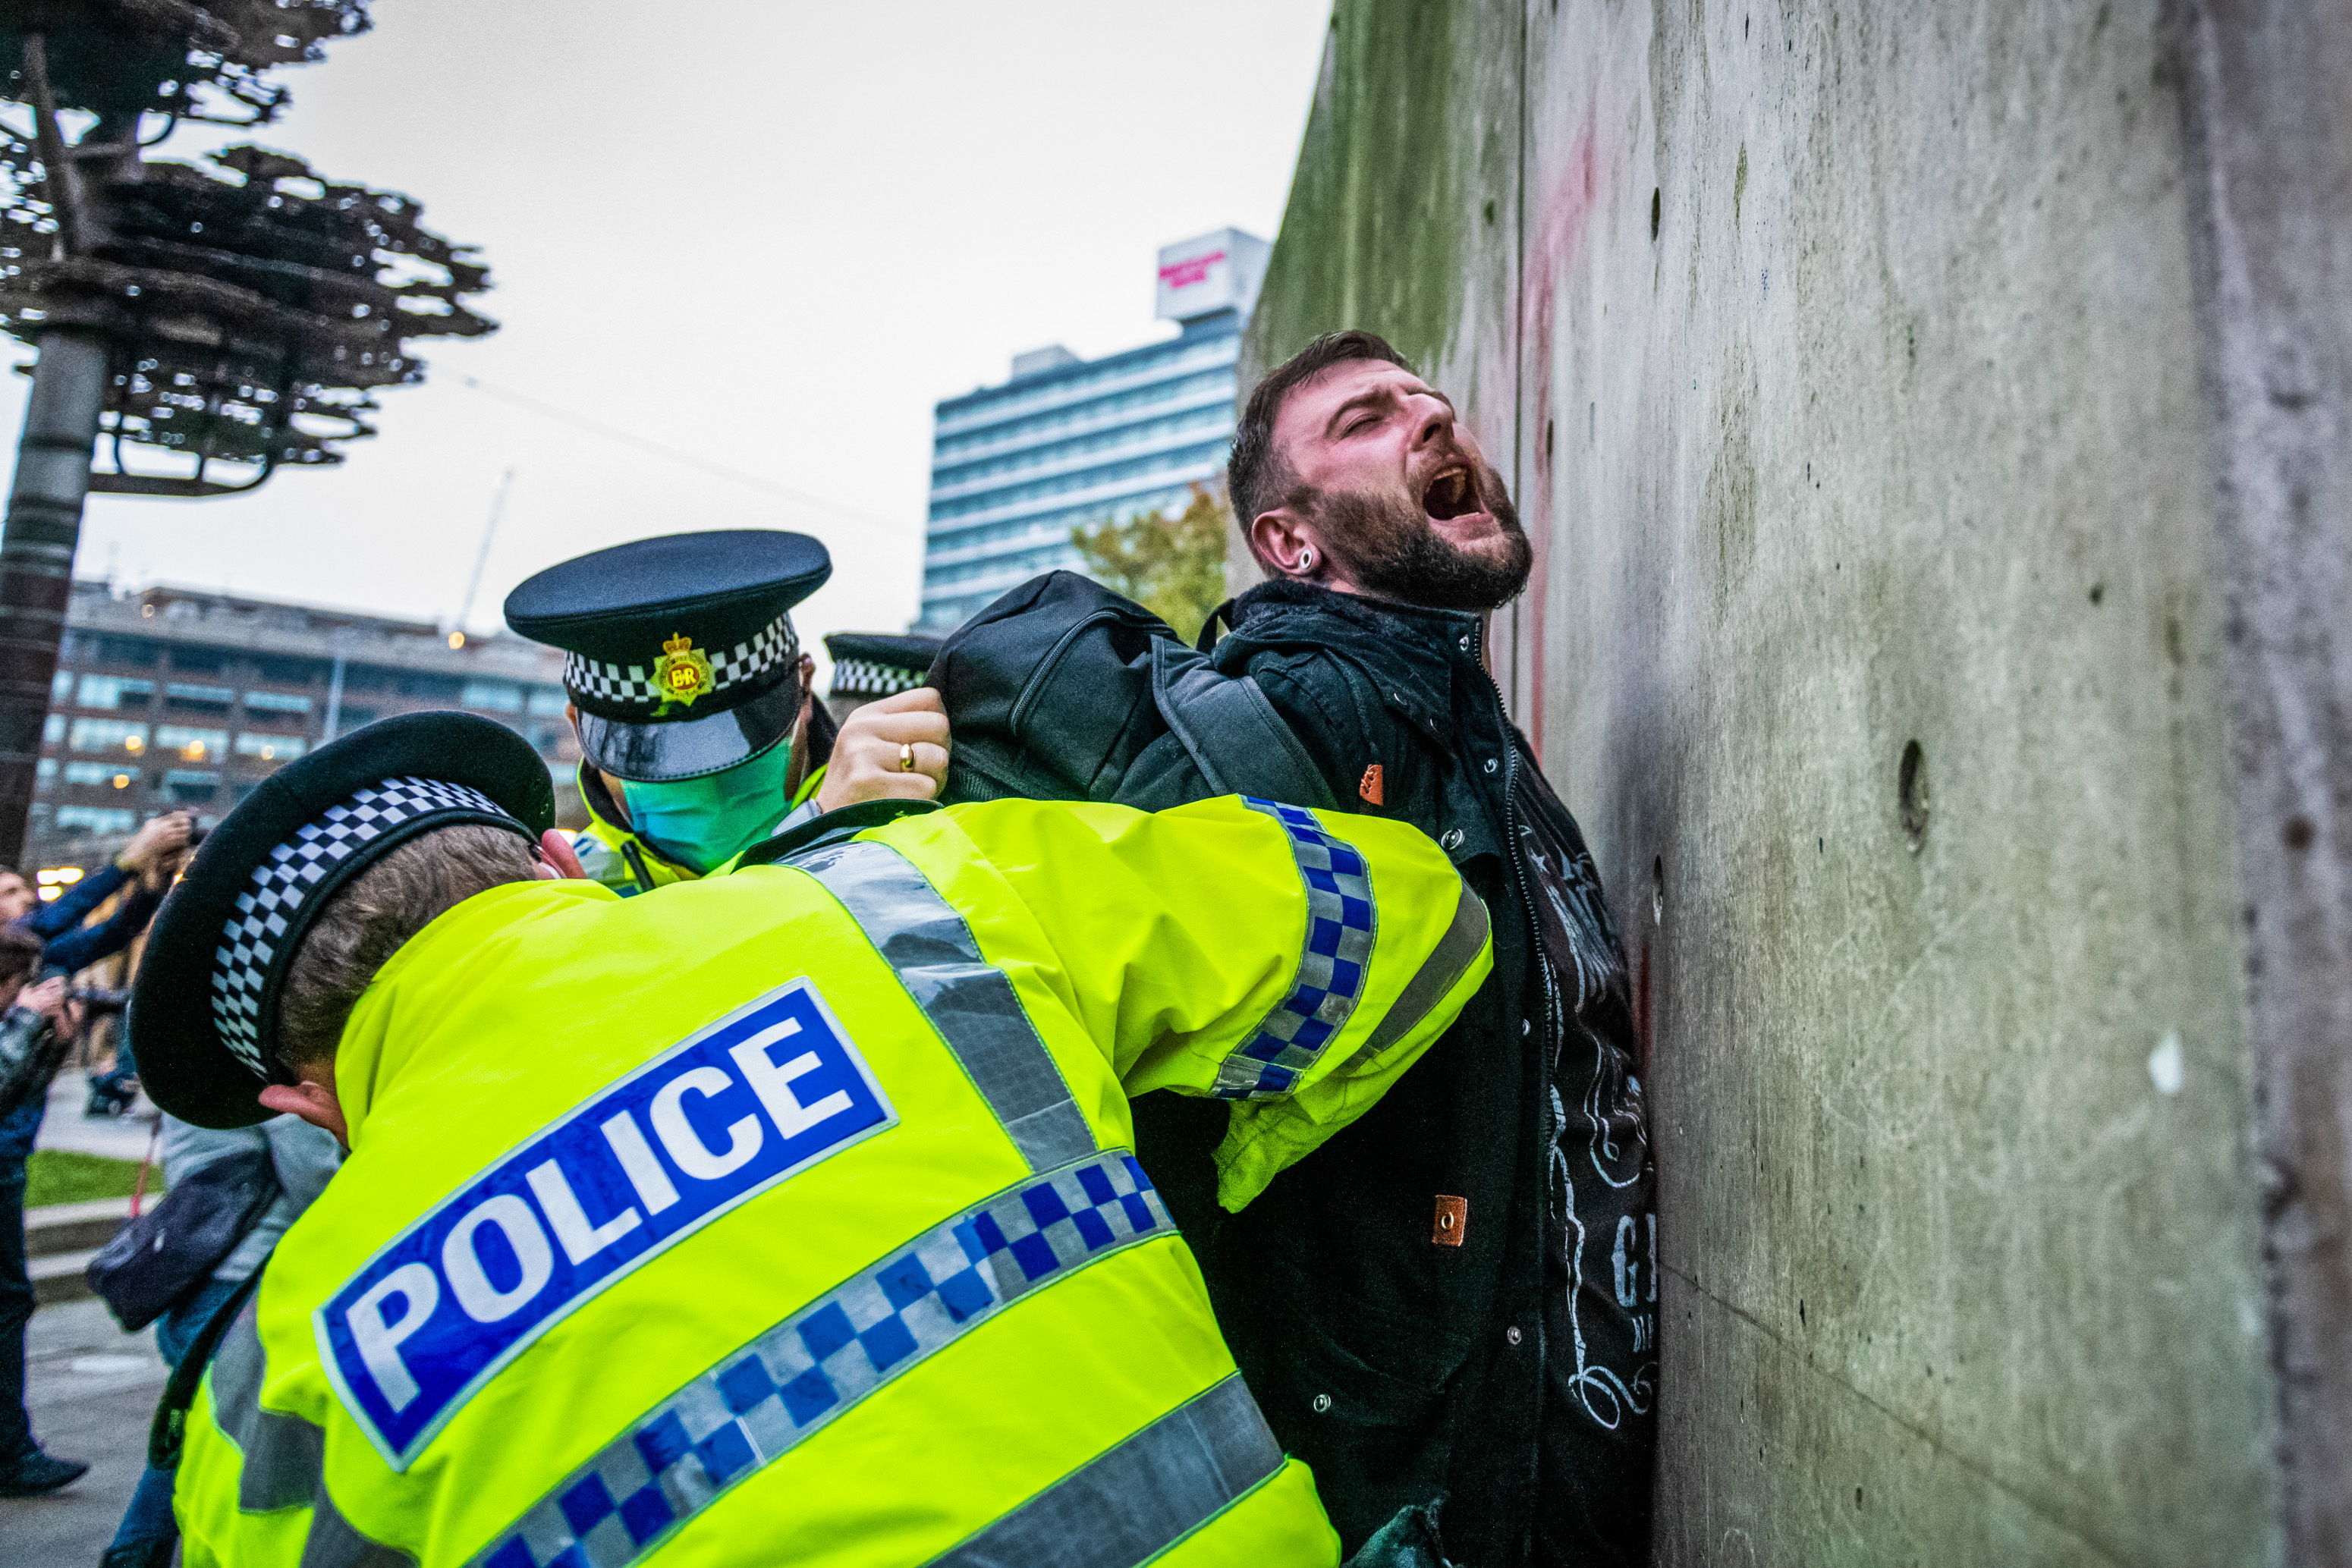 Police officers arrest a protester during the demonstration. Protests all across the country have been seen this weekend challenging the latest lockdown that was imposed on the country earlier in the week. (Photo by Kenny Brown / SOPA Images/Sipa USA)